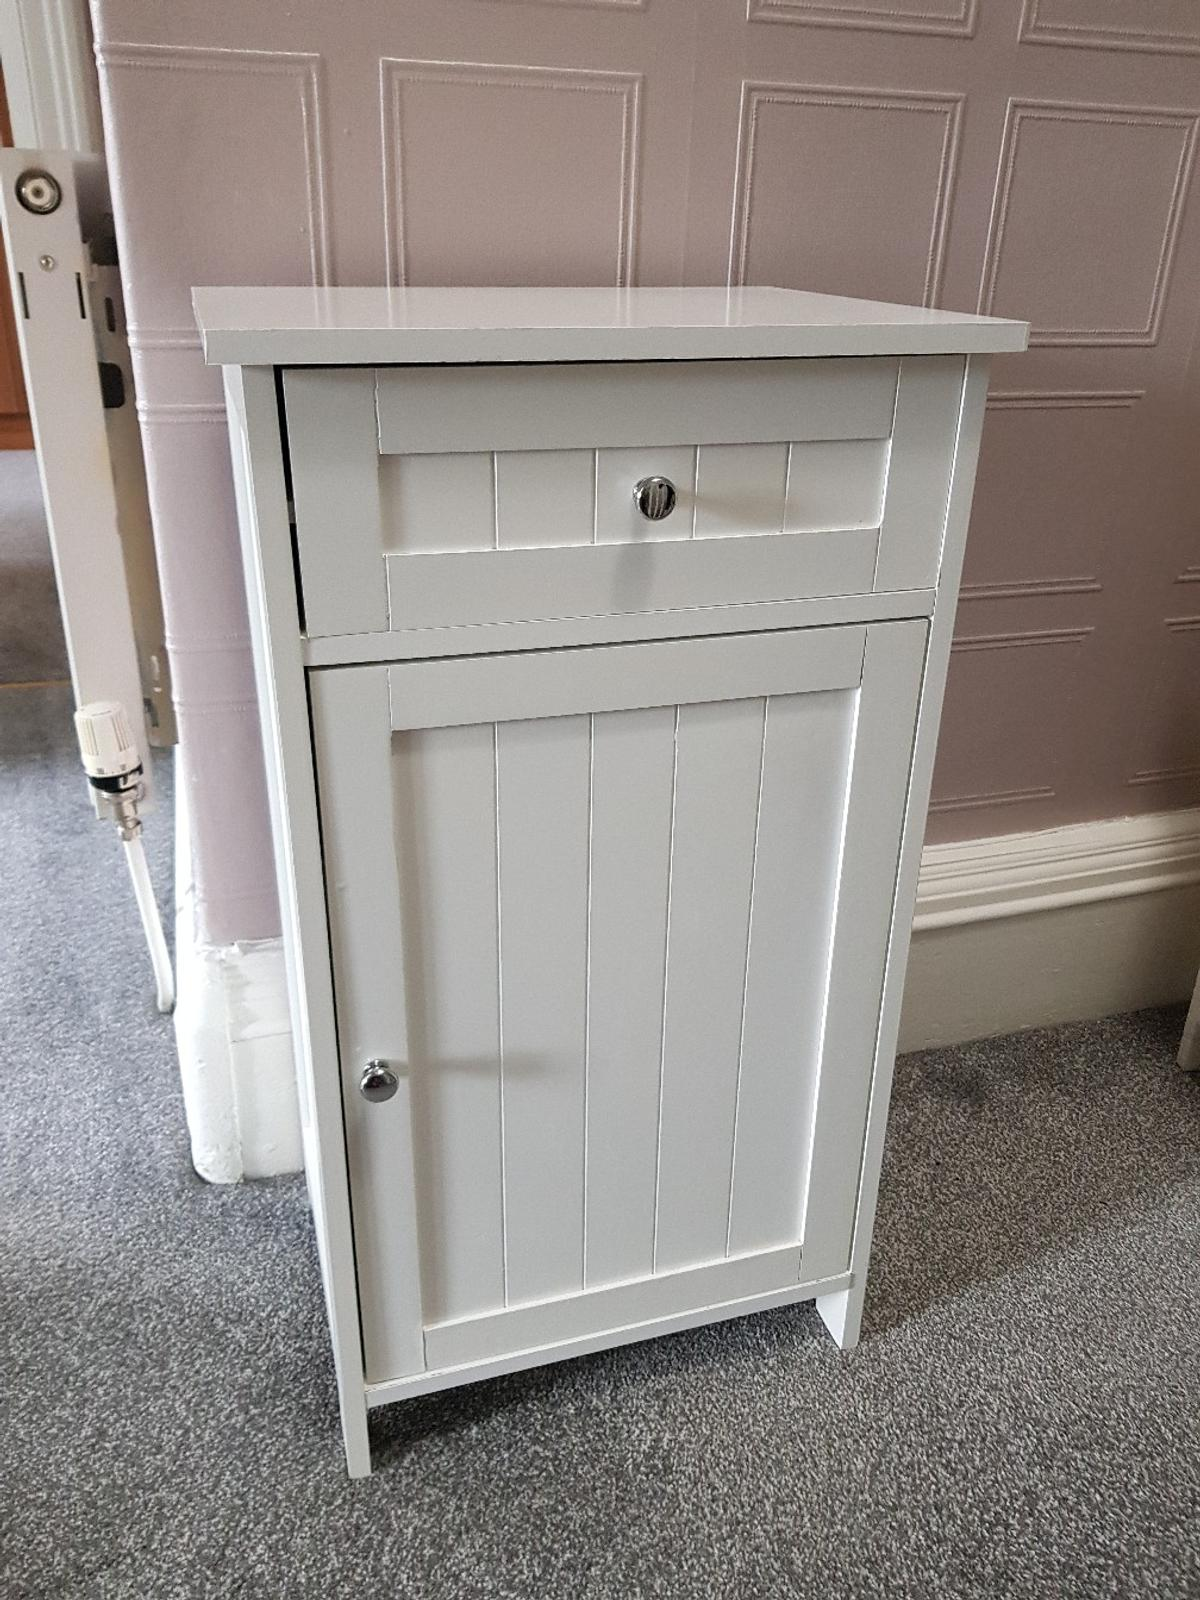 Picture of: B M Maine Bathroom Storage Unit In Wigan For 15 00 For Sale Shpock